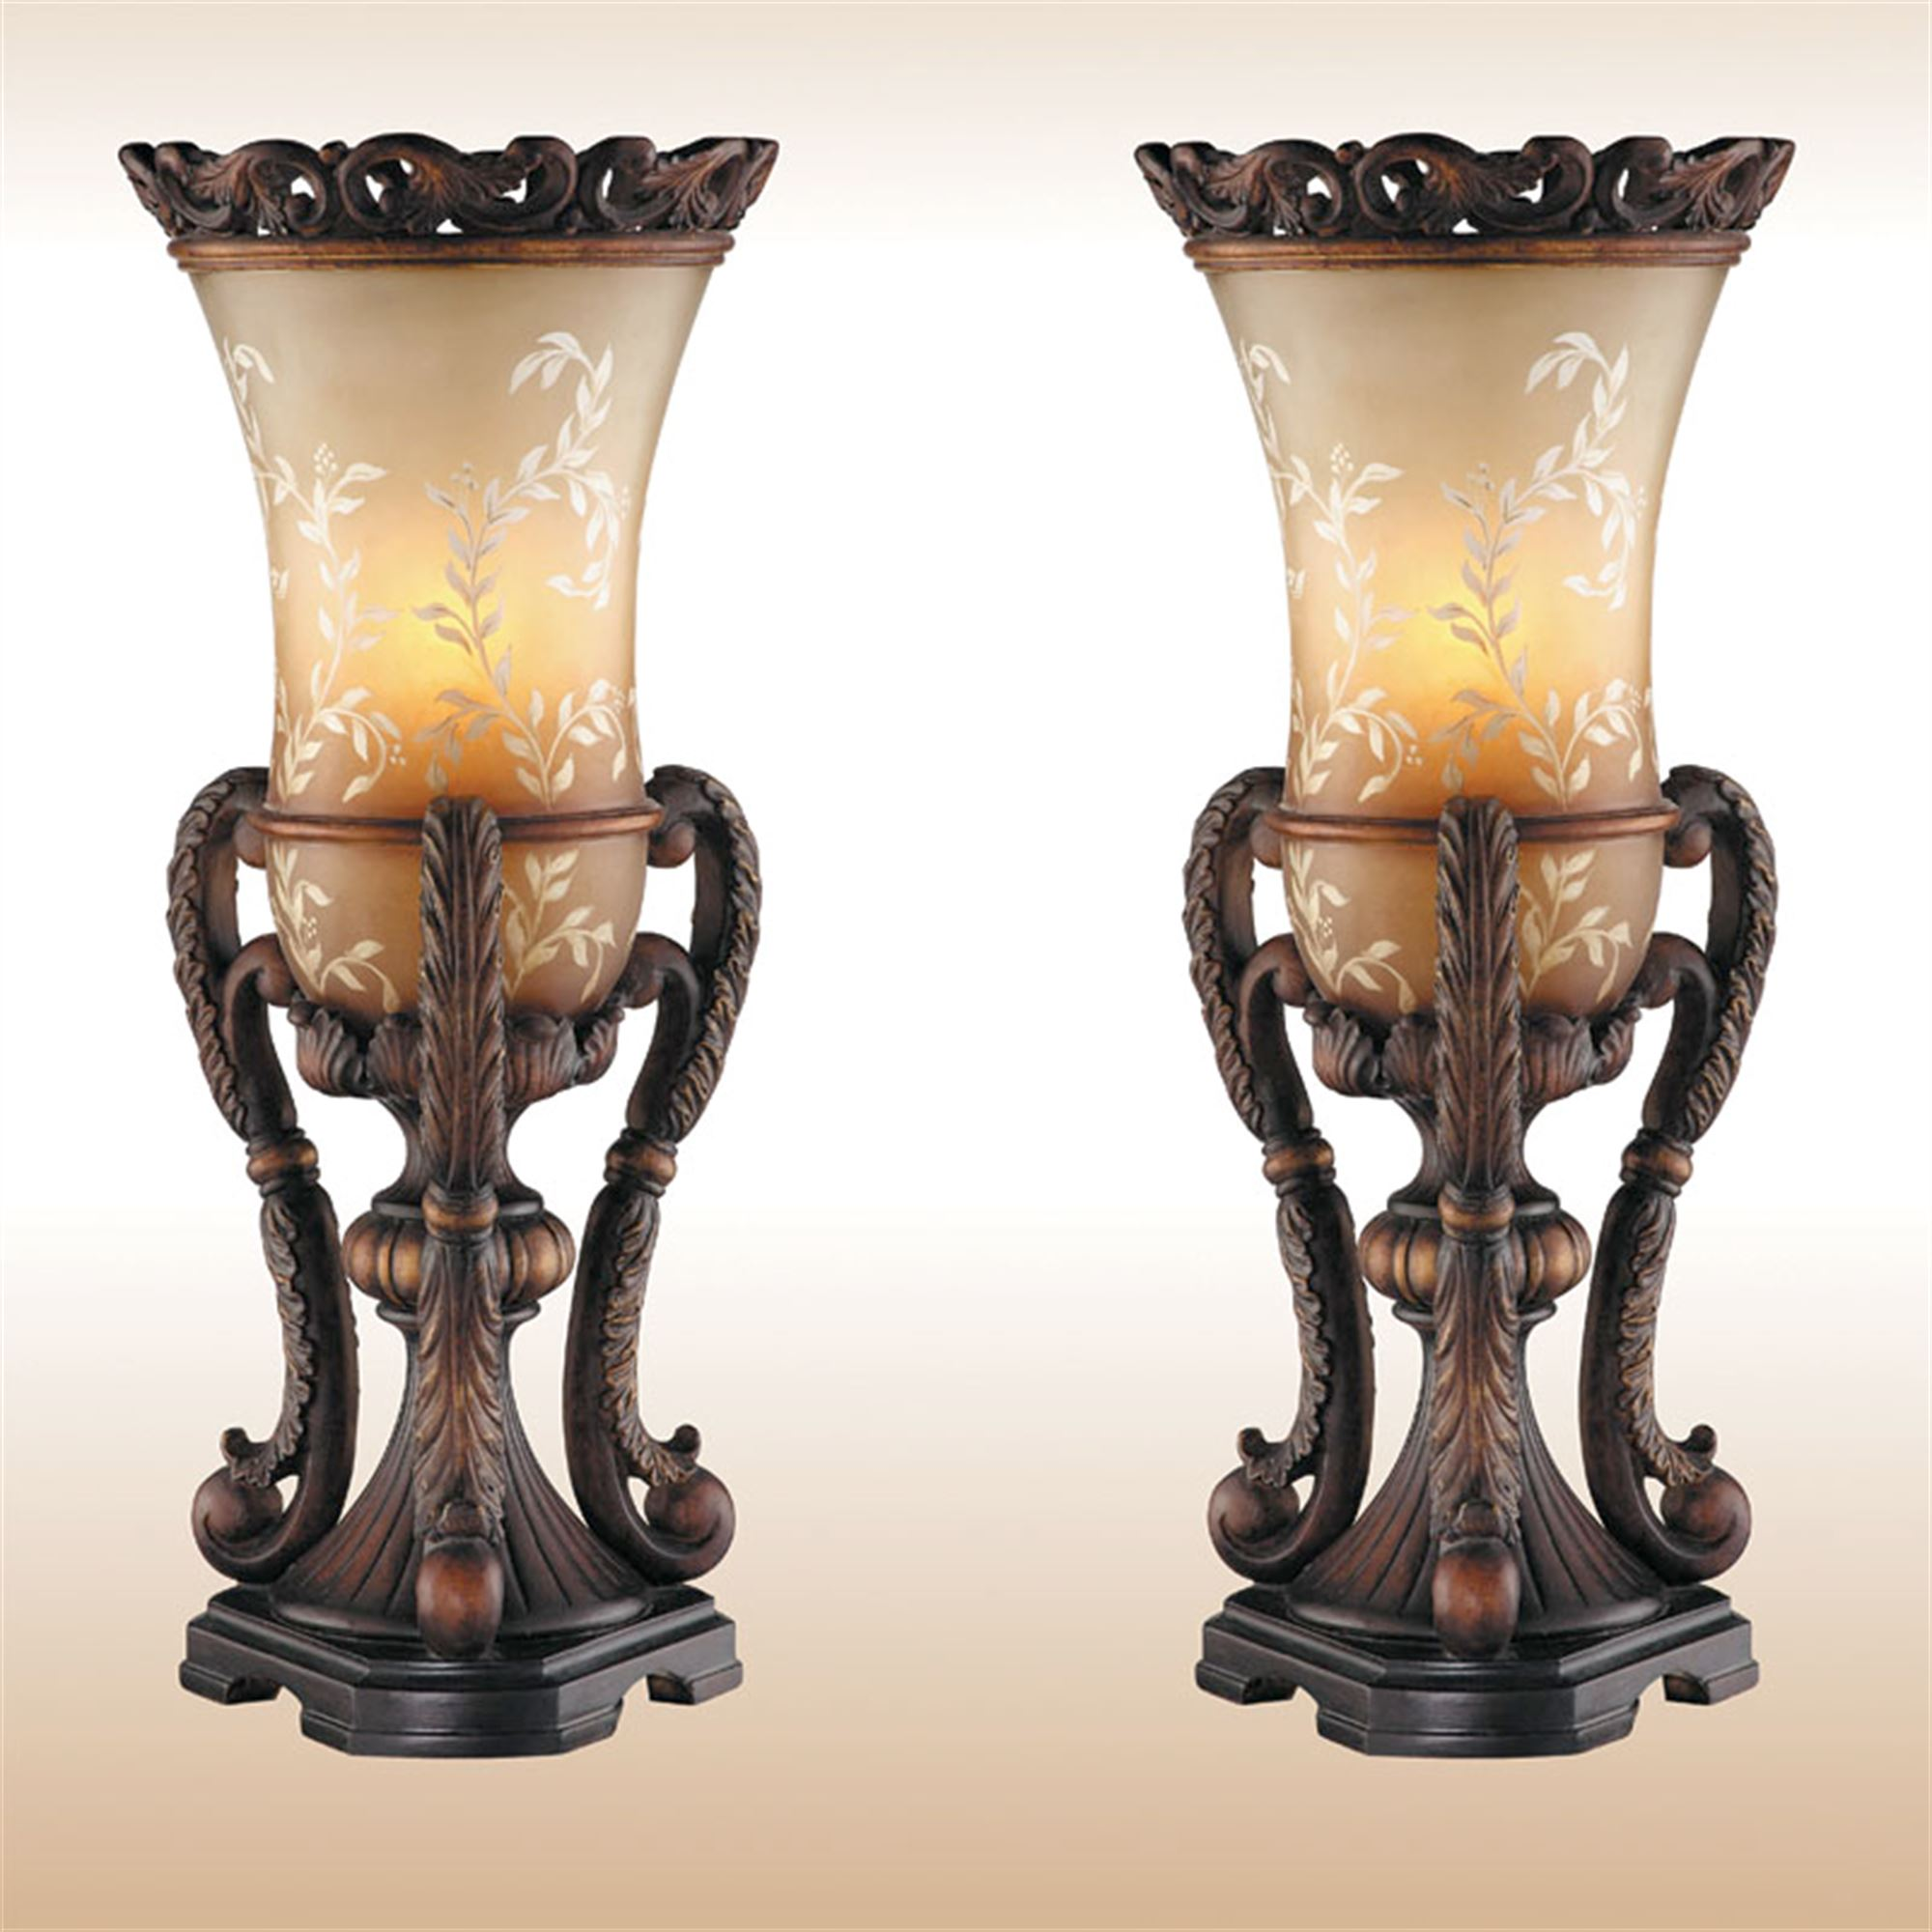 chitrita uplight table lamp pair accent lamps bronze touch zoom garden furniture covers inexpensive home decor threshold gold bar height dining set retailers small square pedestal